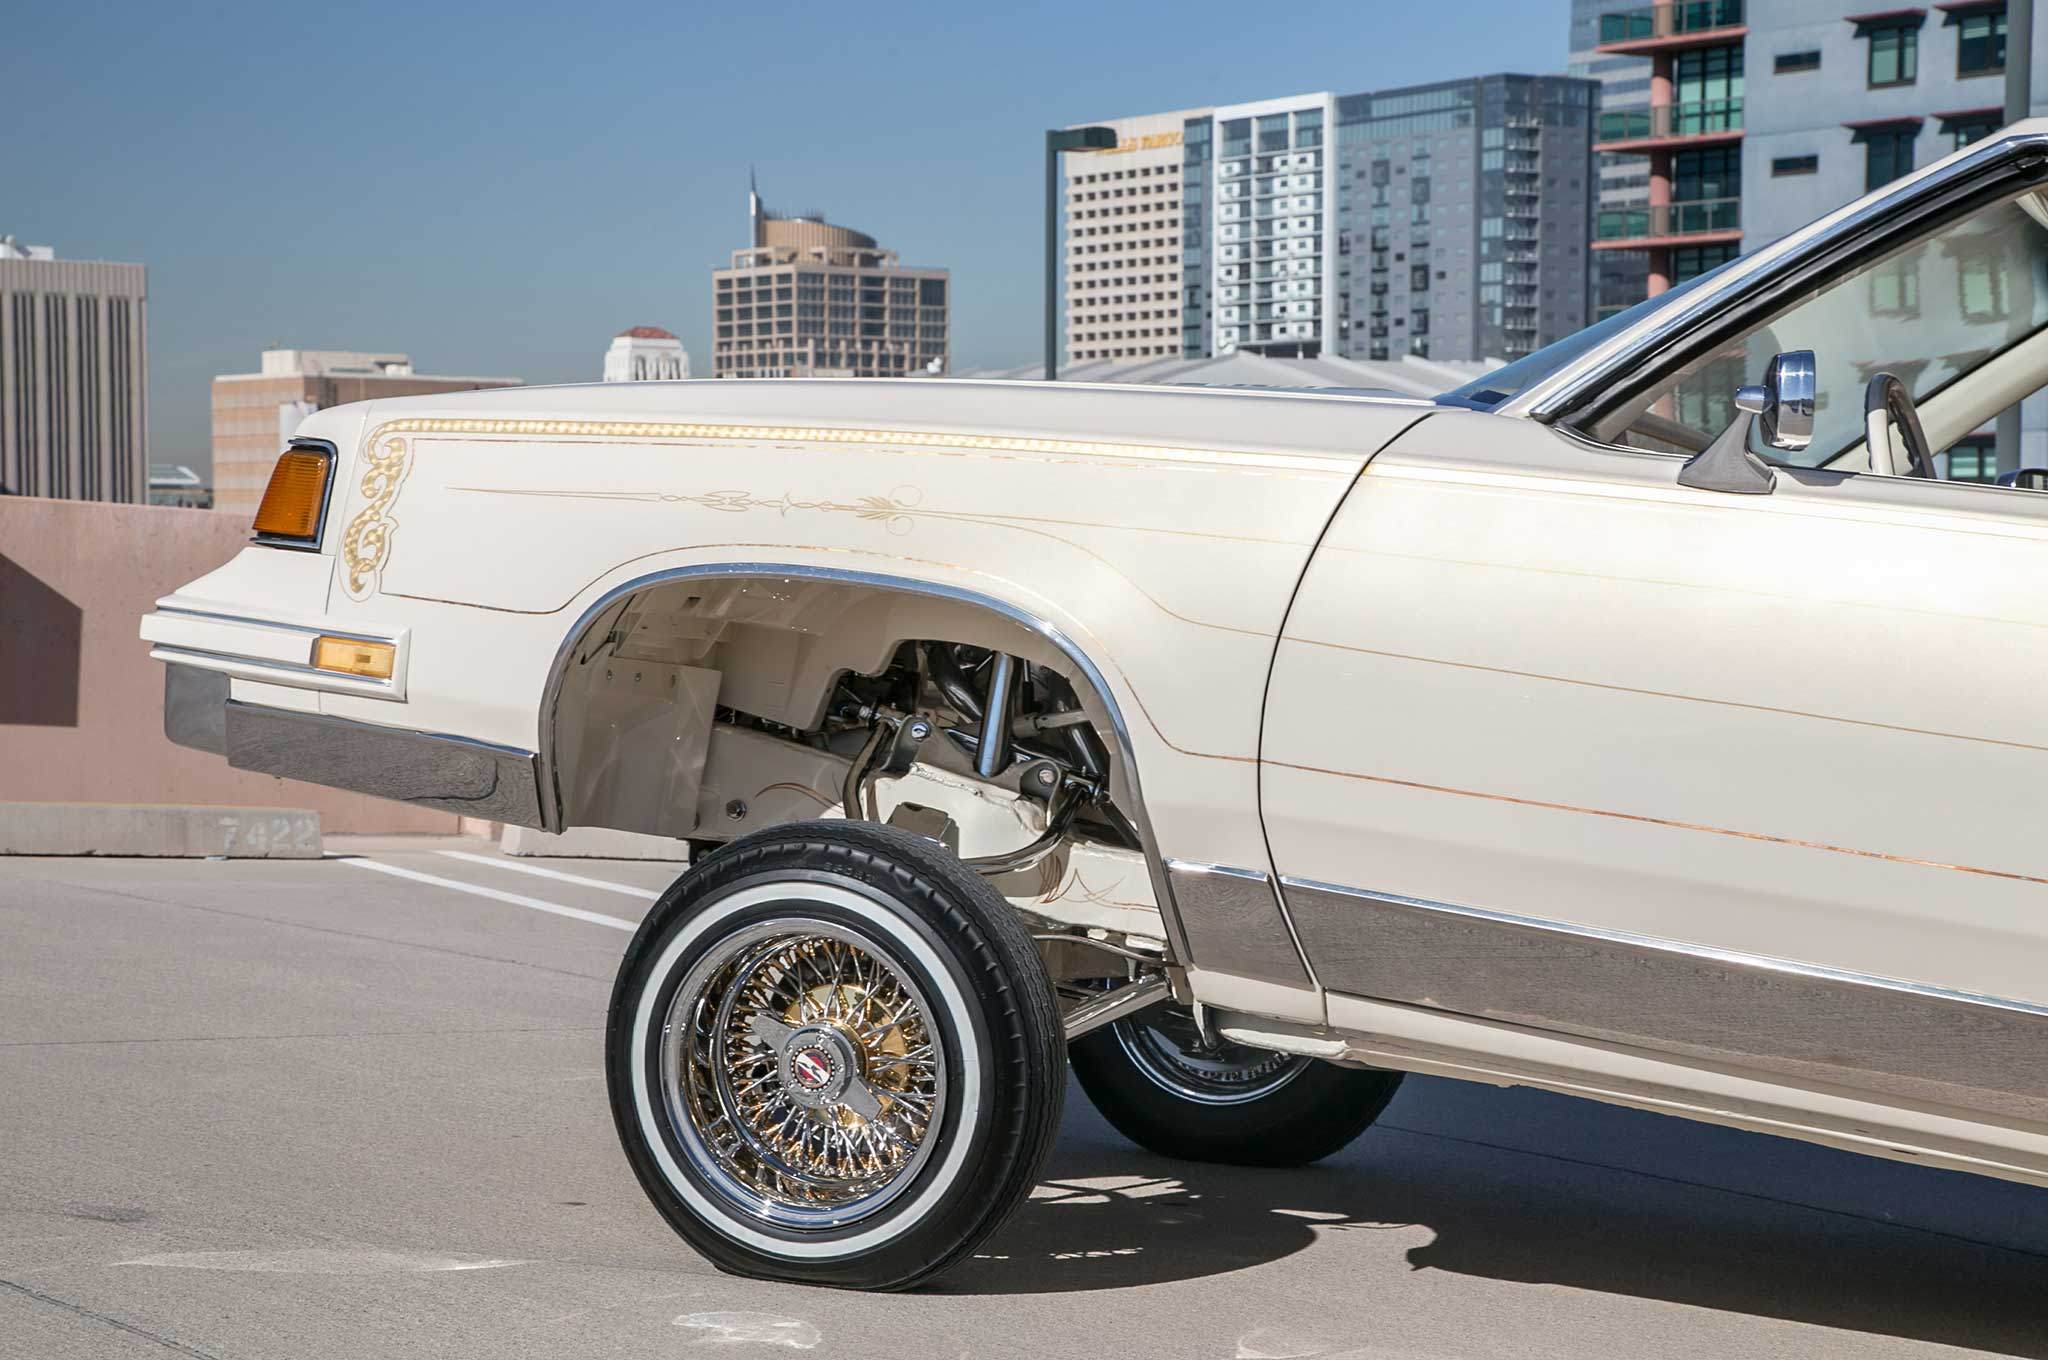 Lowrider Rims And Tires >> 1985 Oldsmobile Cutlass Supreme - Hurting Feelings - Lowrider